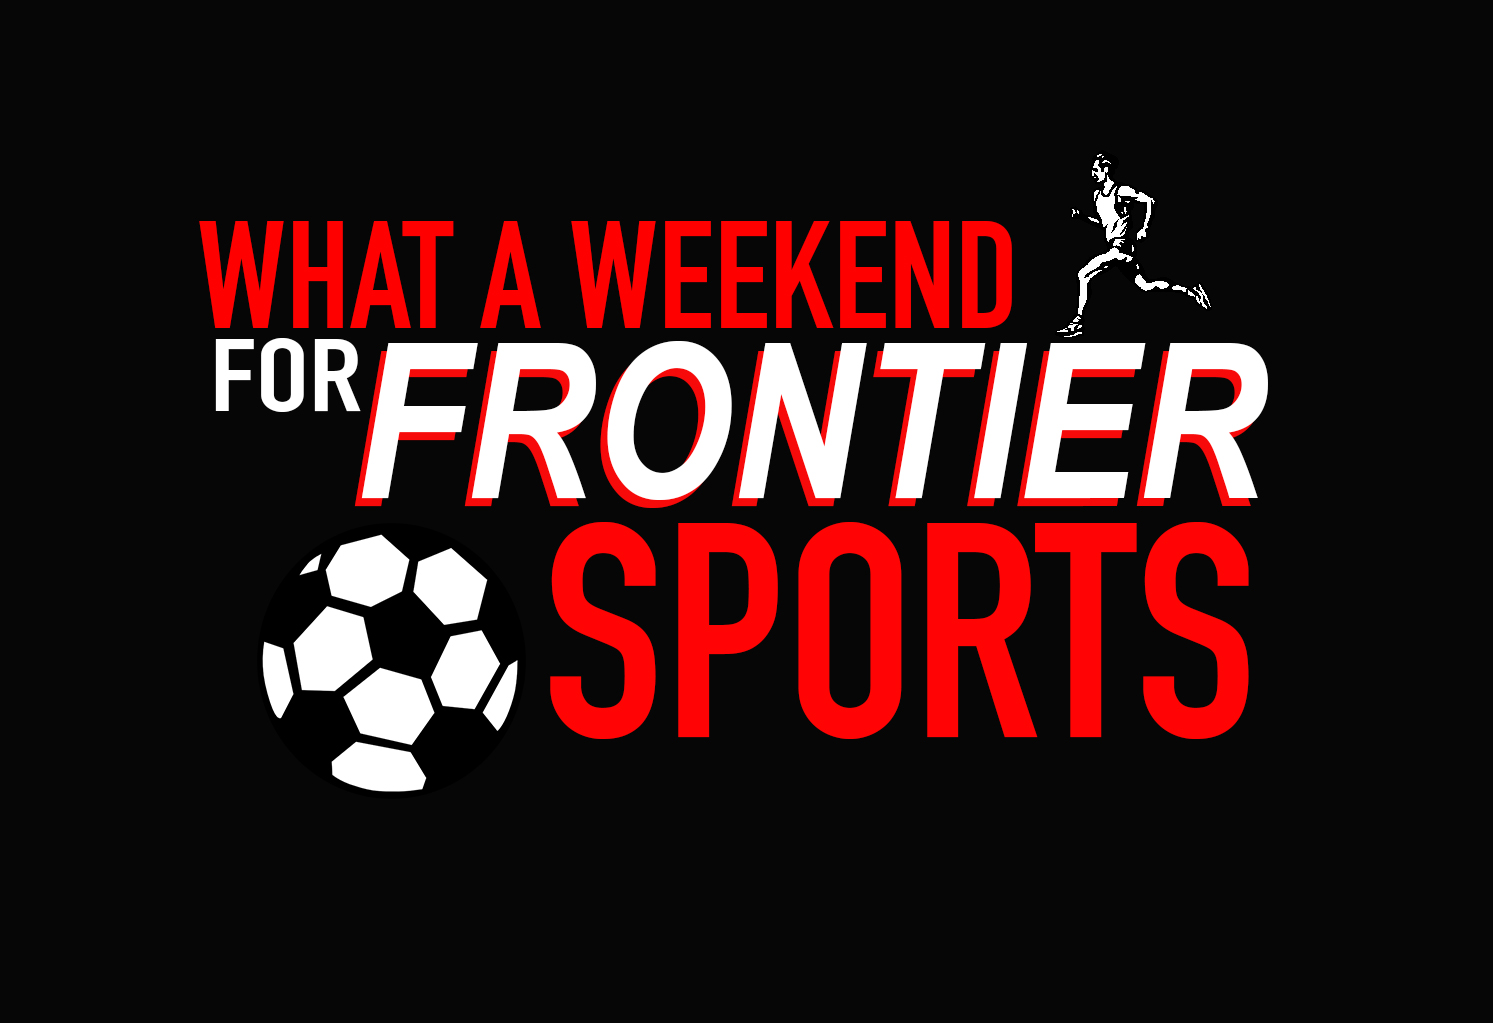 What A Weekend For Frontier Sports!